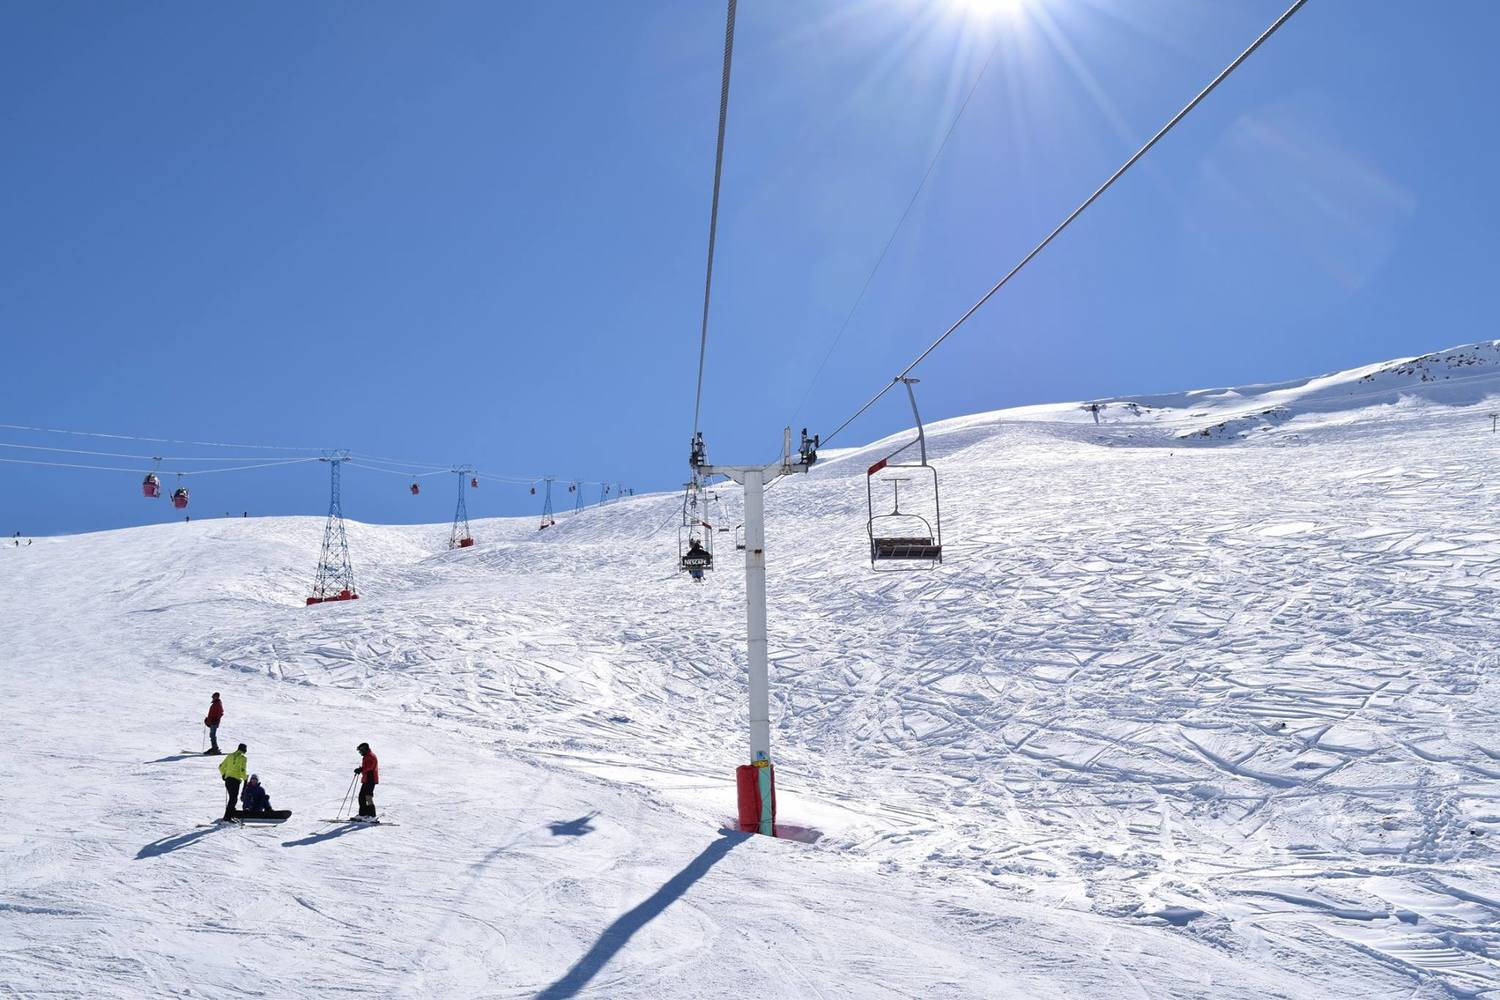 Iran 2016 Bigsblogs Aqua Water Jogging Belt For Your Run Cross Training Post Stroke Attack Size M After A Solid Few Hours On Piste And Even Bit Of Cheeky Powder Along The Way We Stopped Tea Iranians Seemed To Have Filled Alcoholic Void In